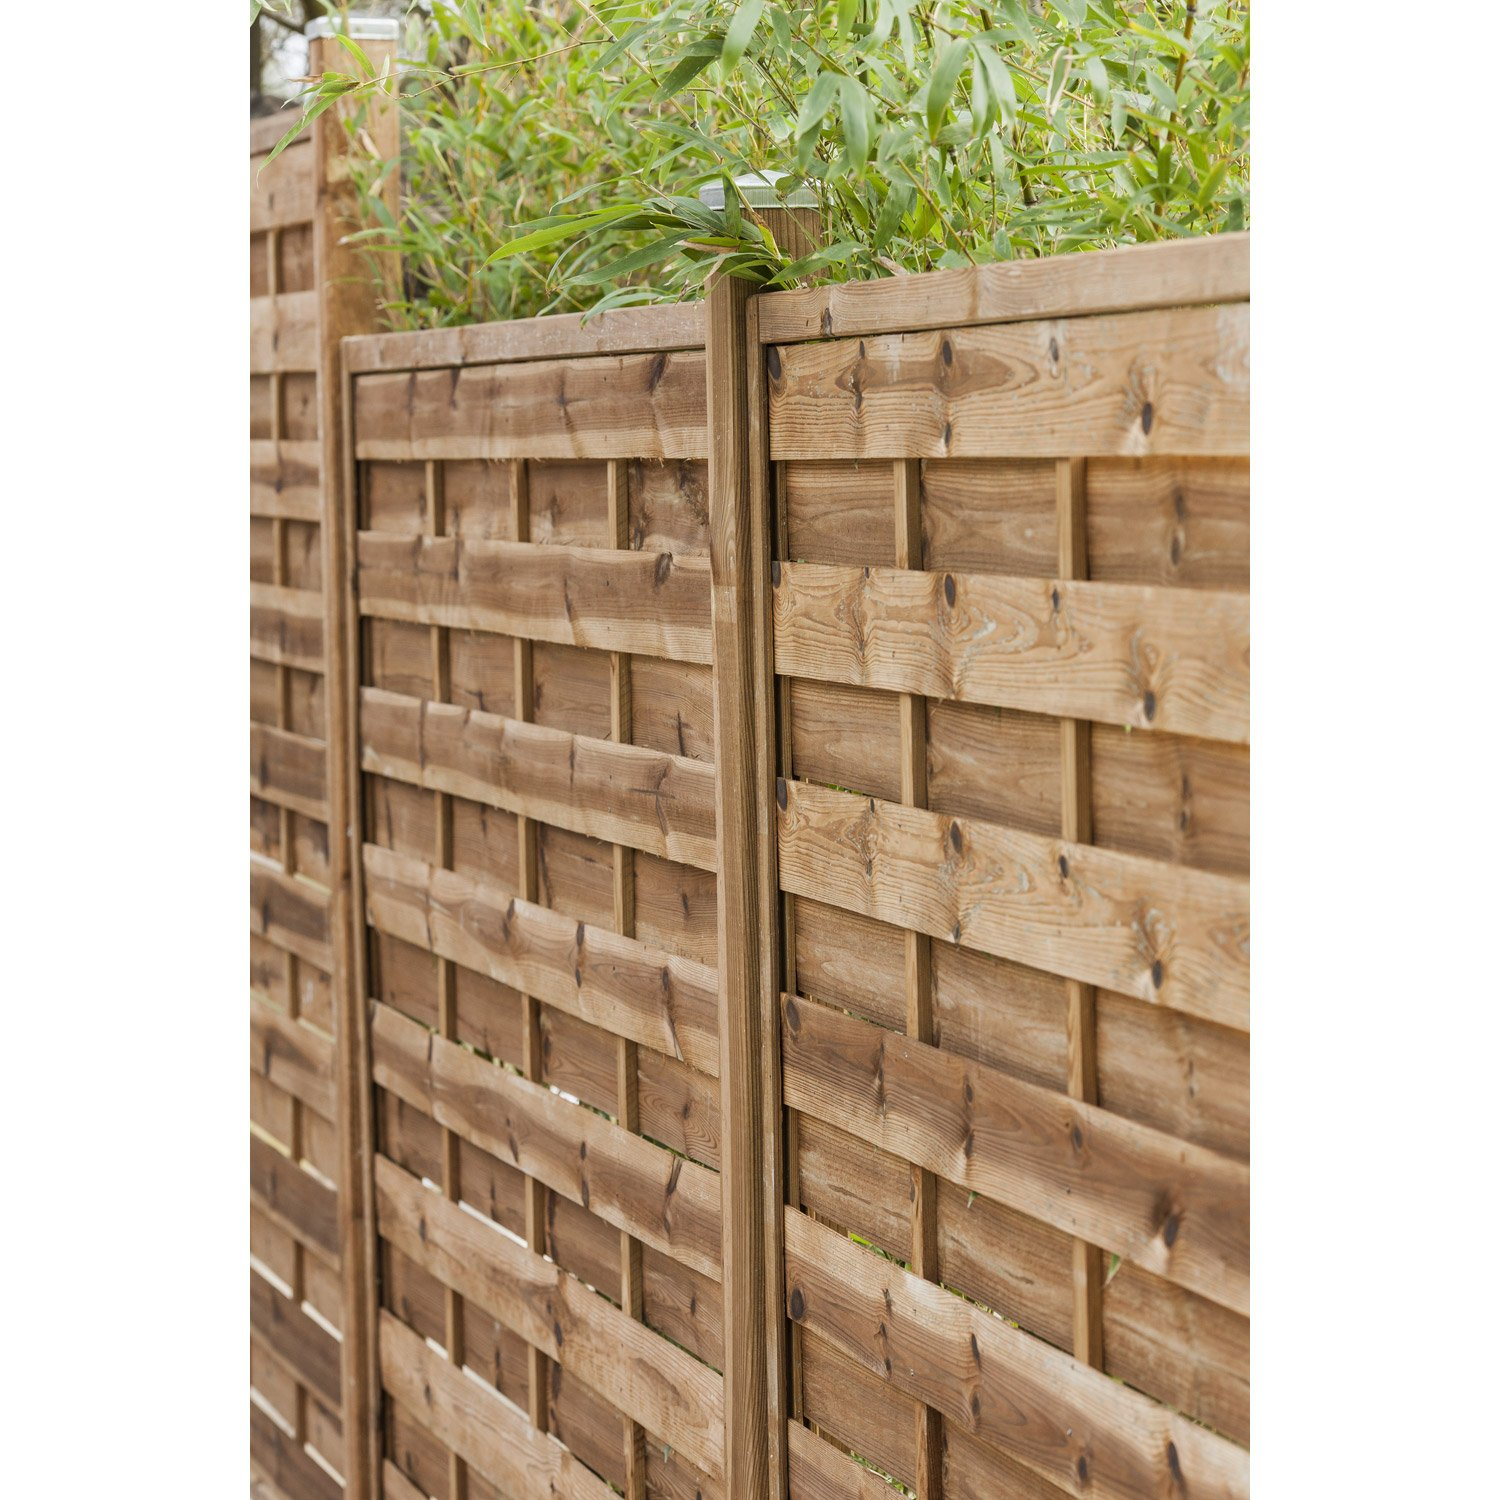 Leroy Merlin Grillage Poule Luxe Stock Ides Dimages De Grillage Poule Leroy Merlin